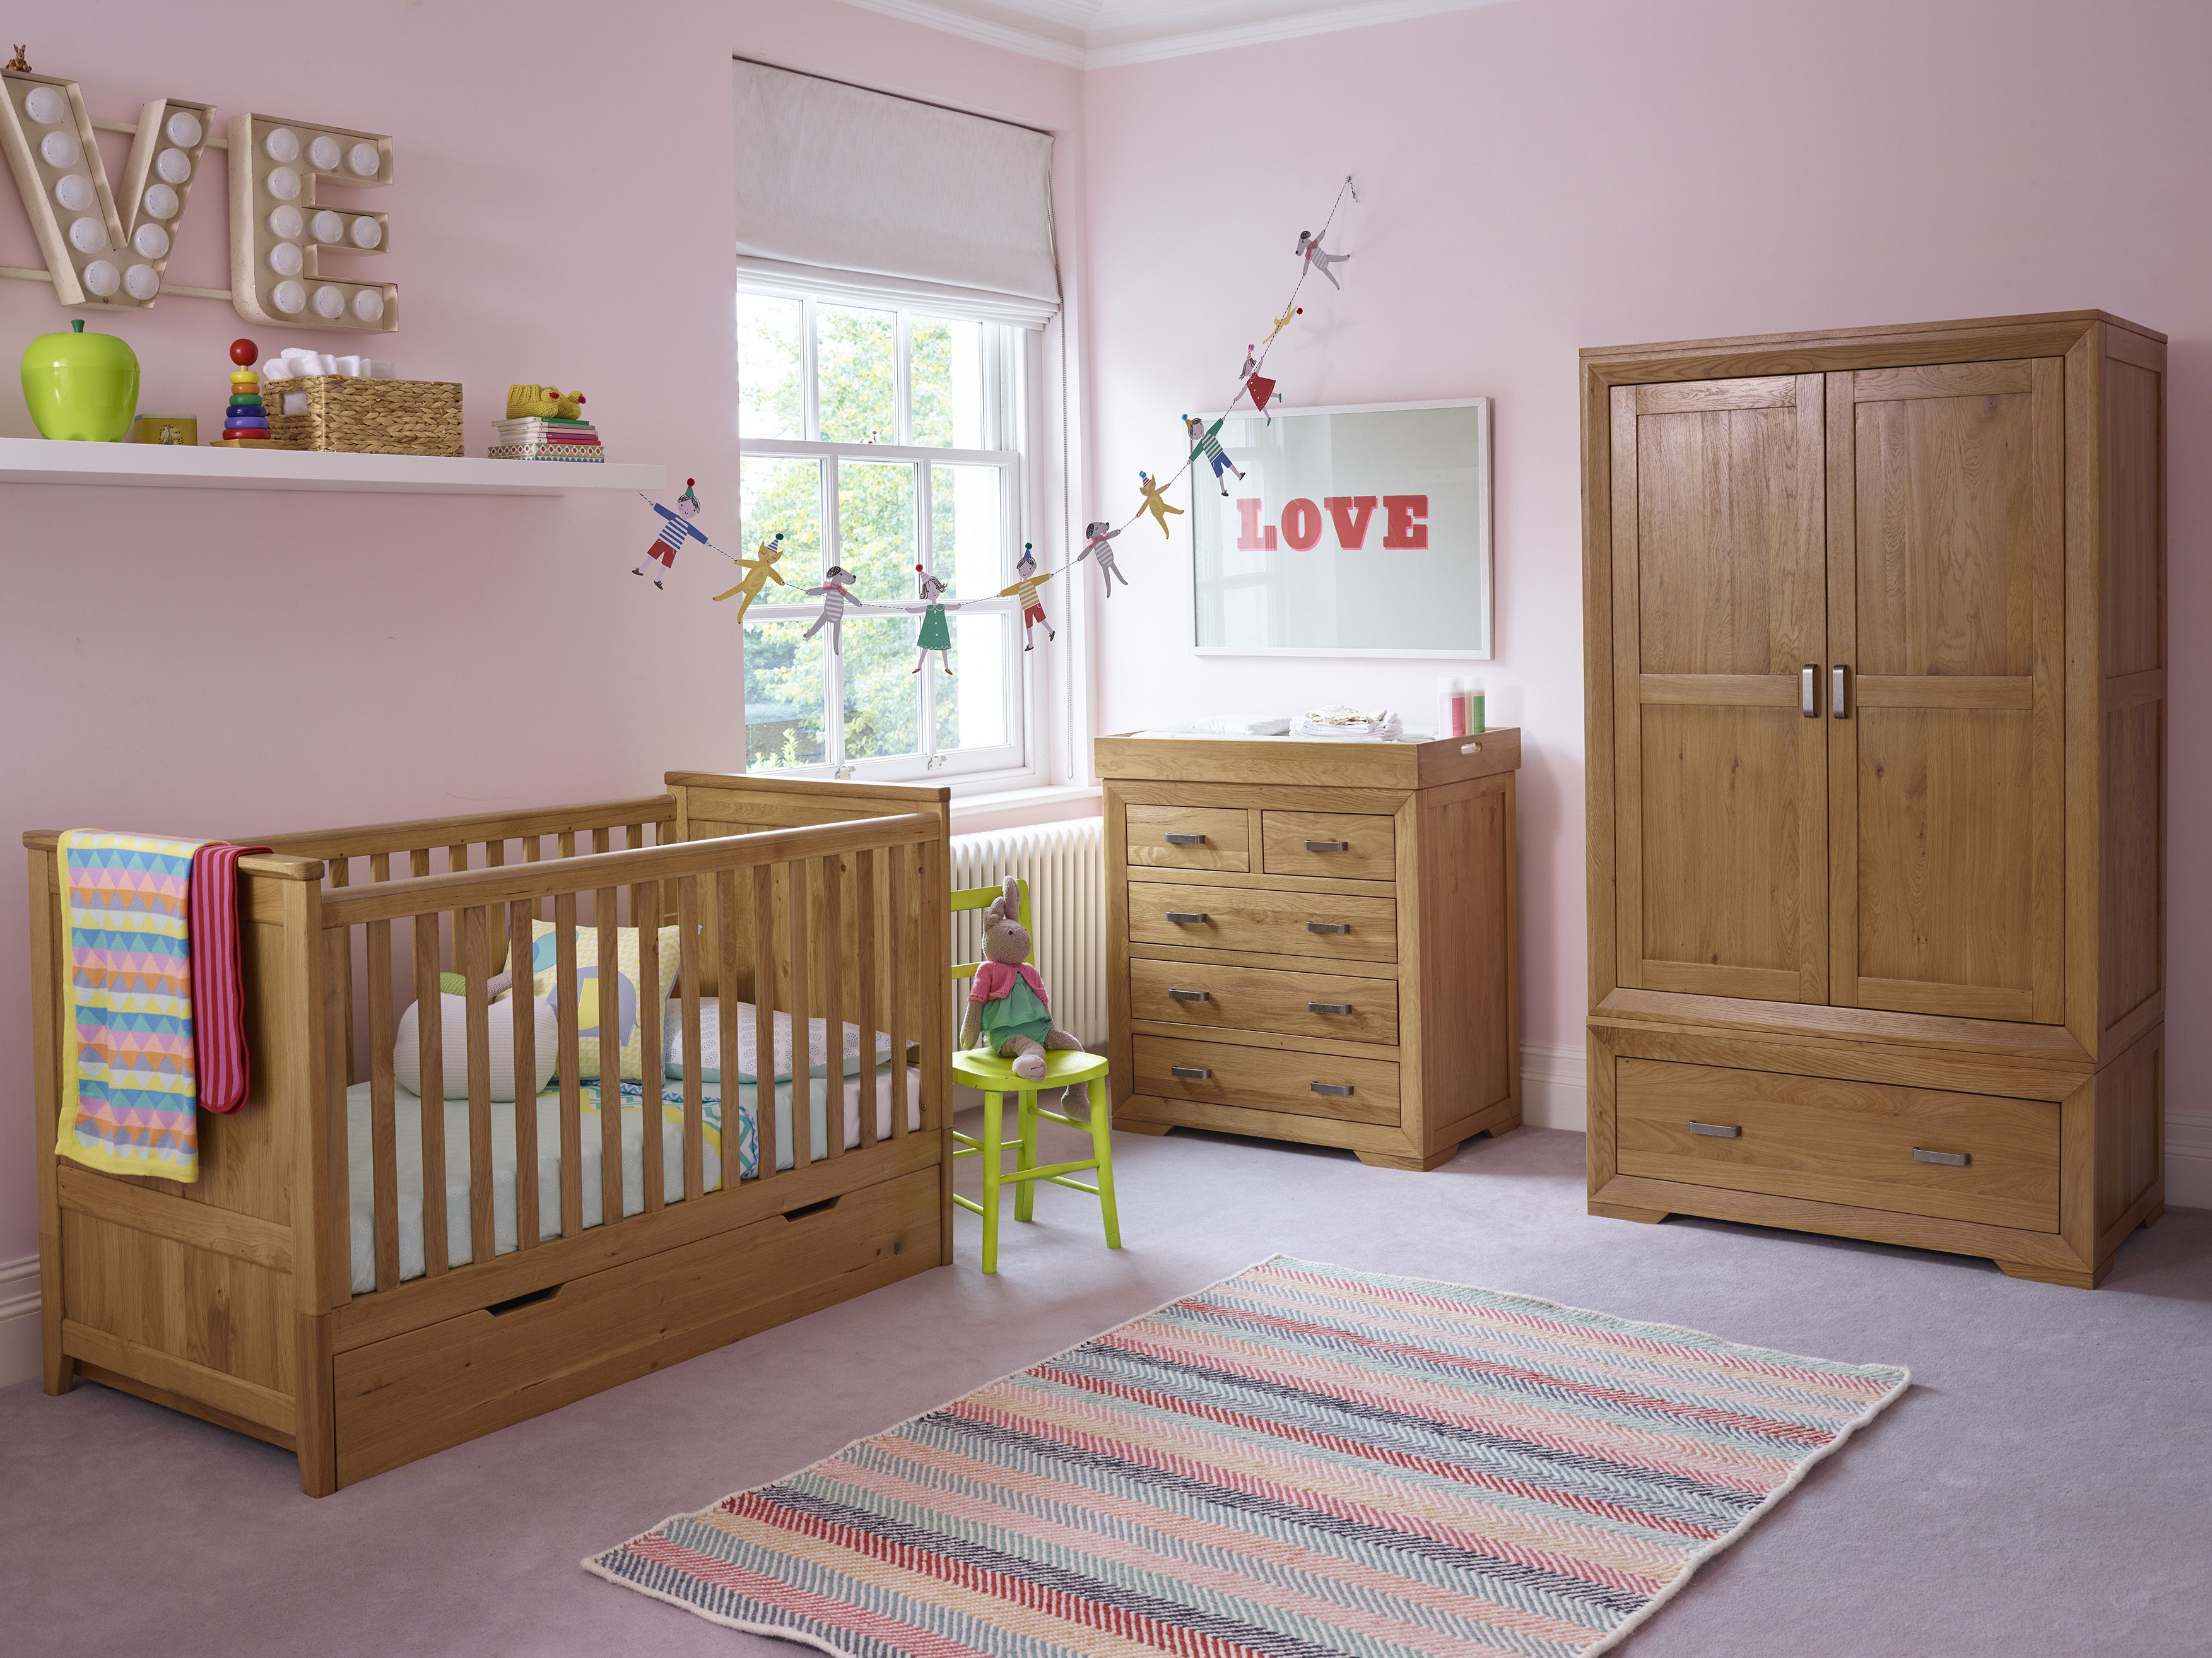 larger twins dividers cribs safety through ideas creative l see baby for design crib inspiration view divider